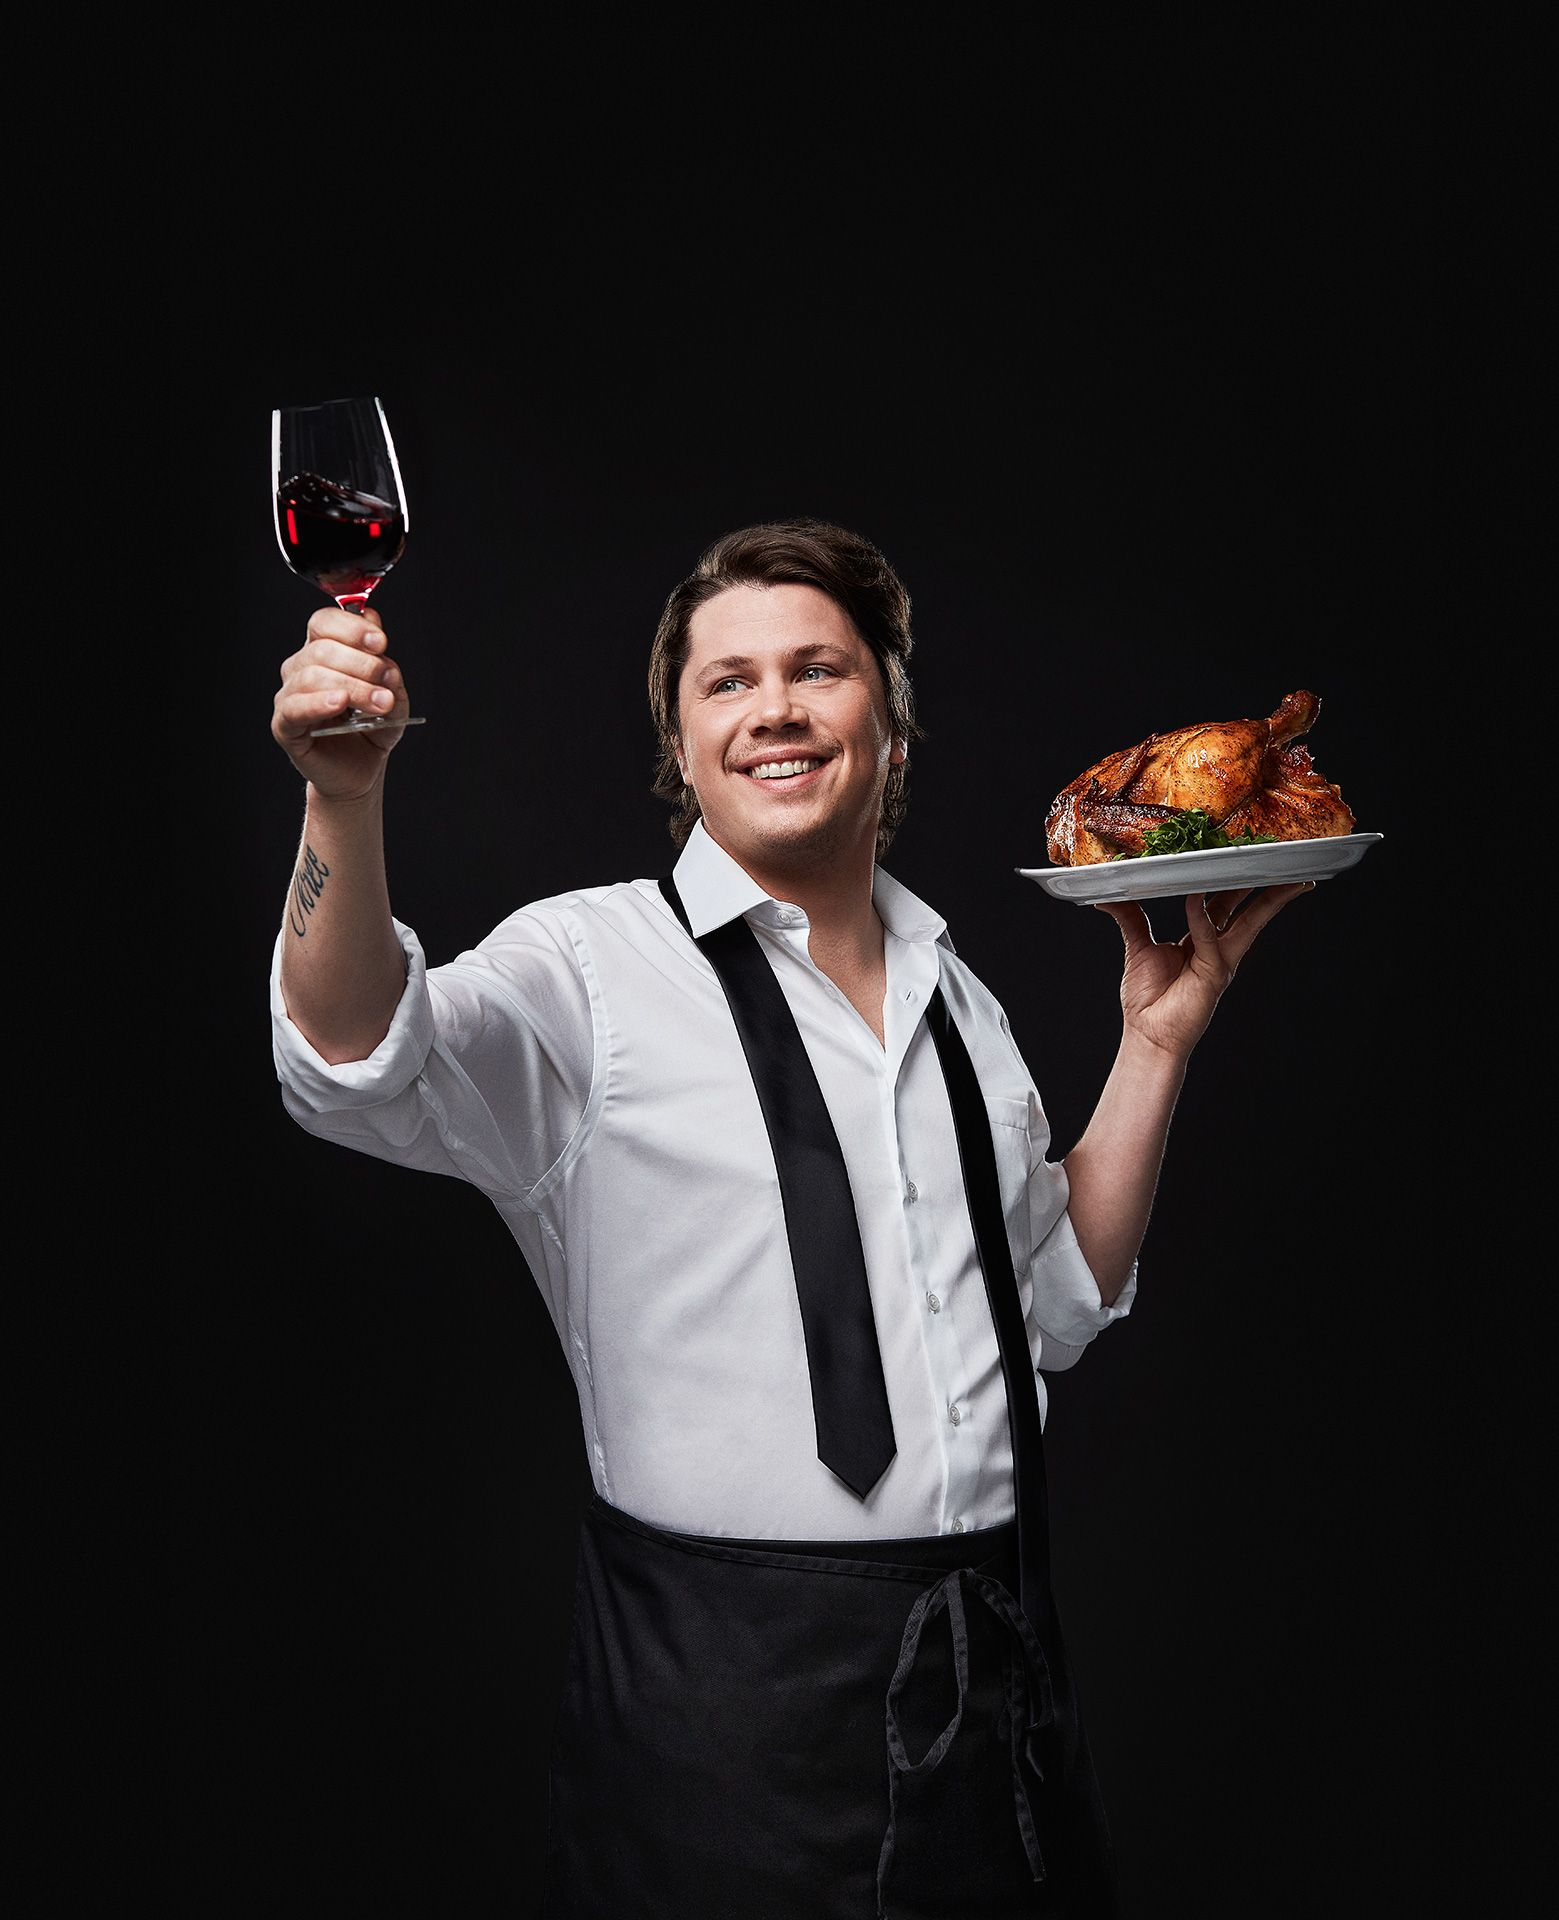 portrait of male chef Nicholas Giambattisto holding a glass of red wine in the air in one hand and a full roasted chicken on a plate in the other by Jocelyn Michel for the Cathcart